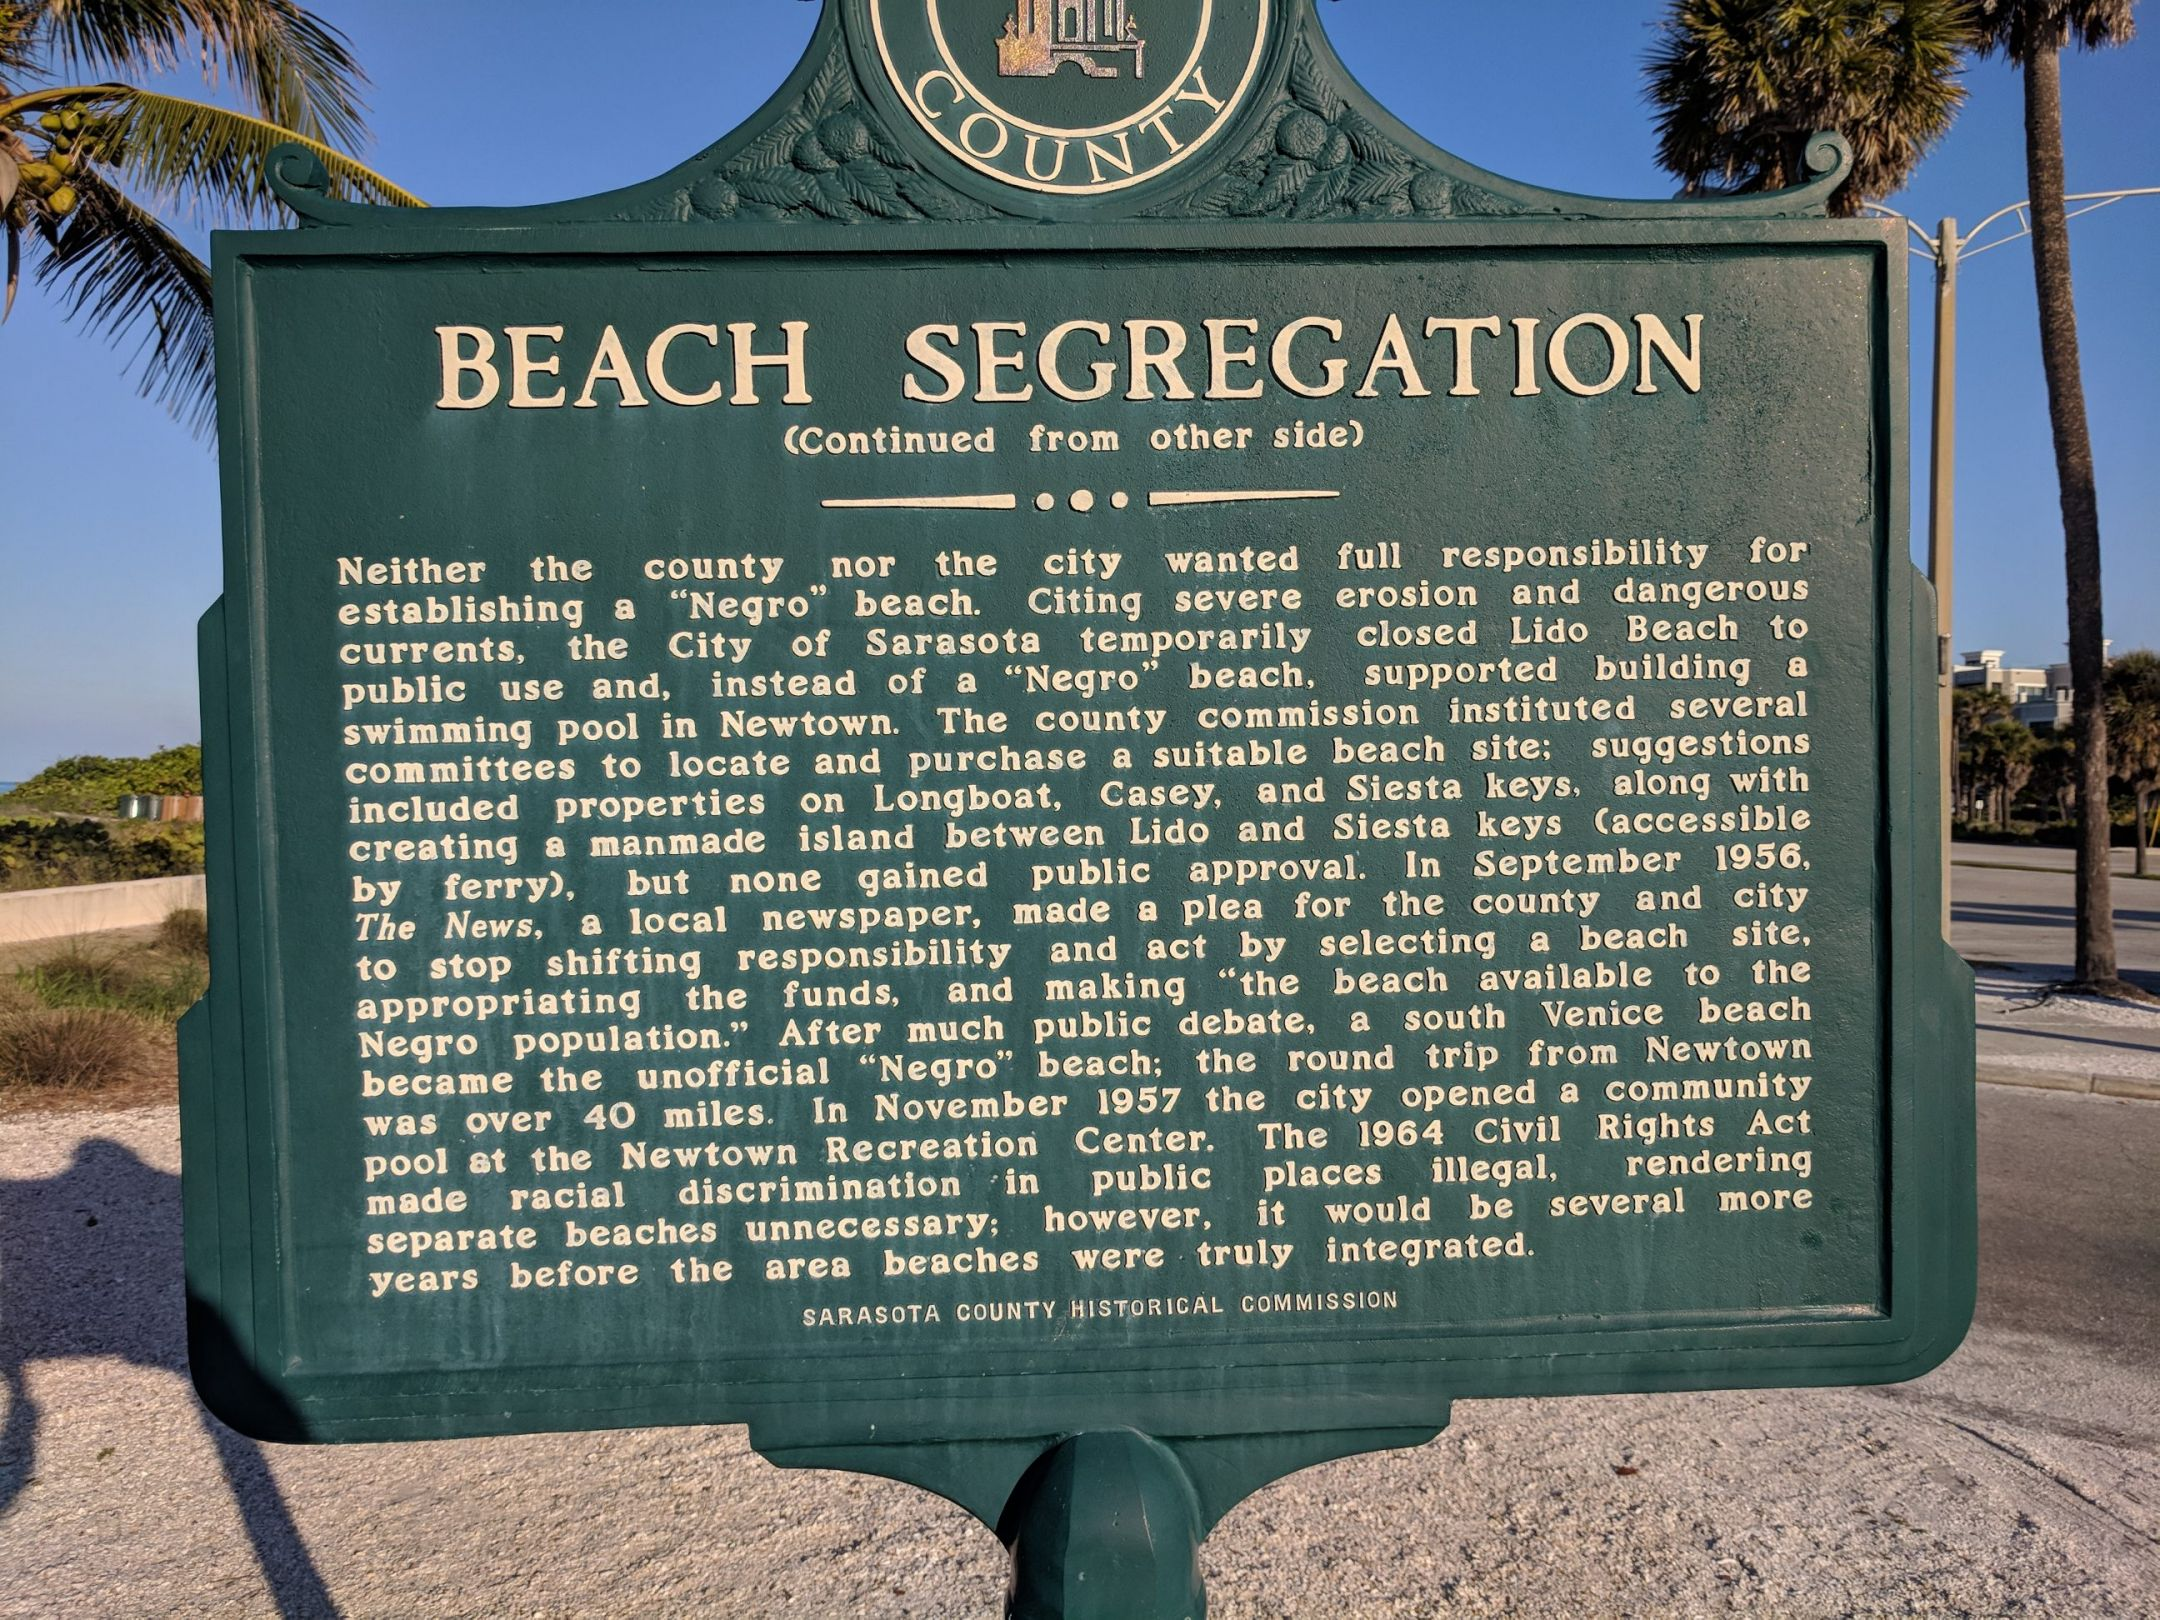 Beach segregation information continued